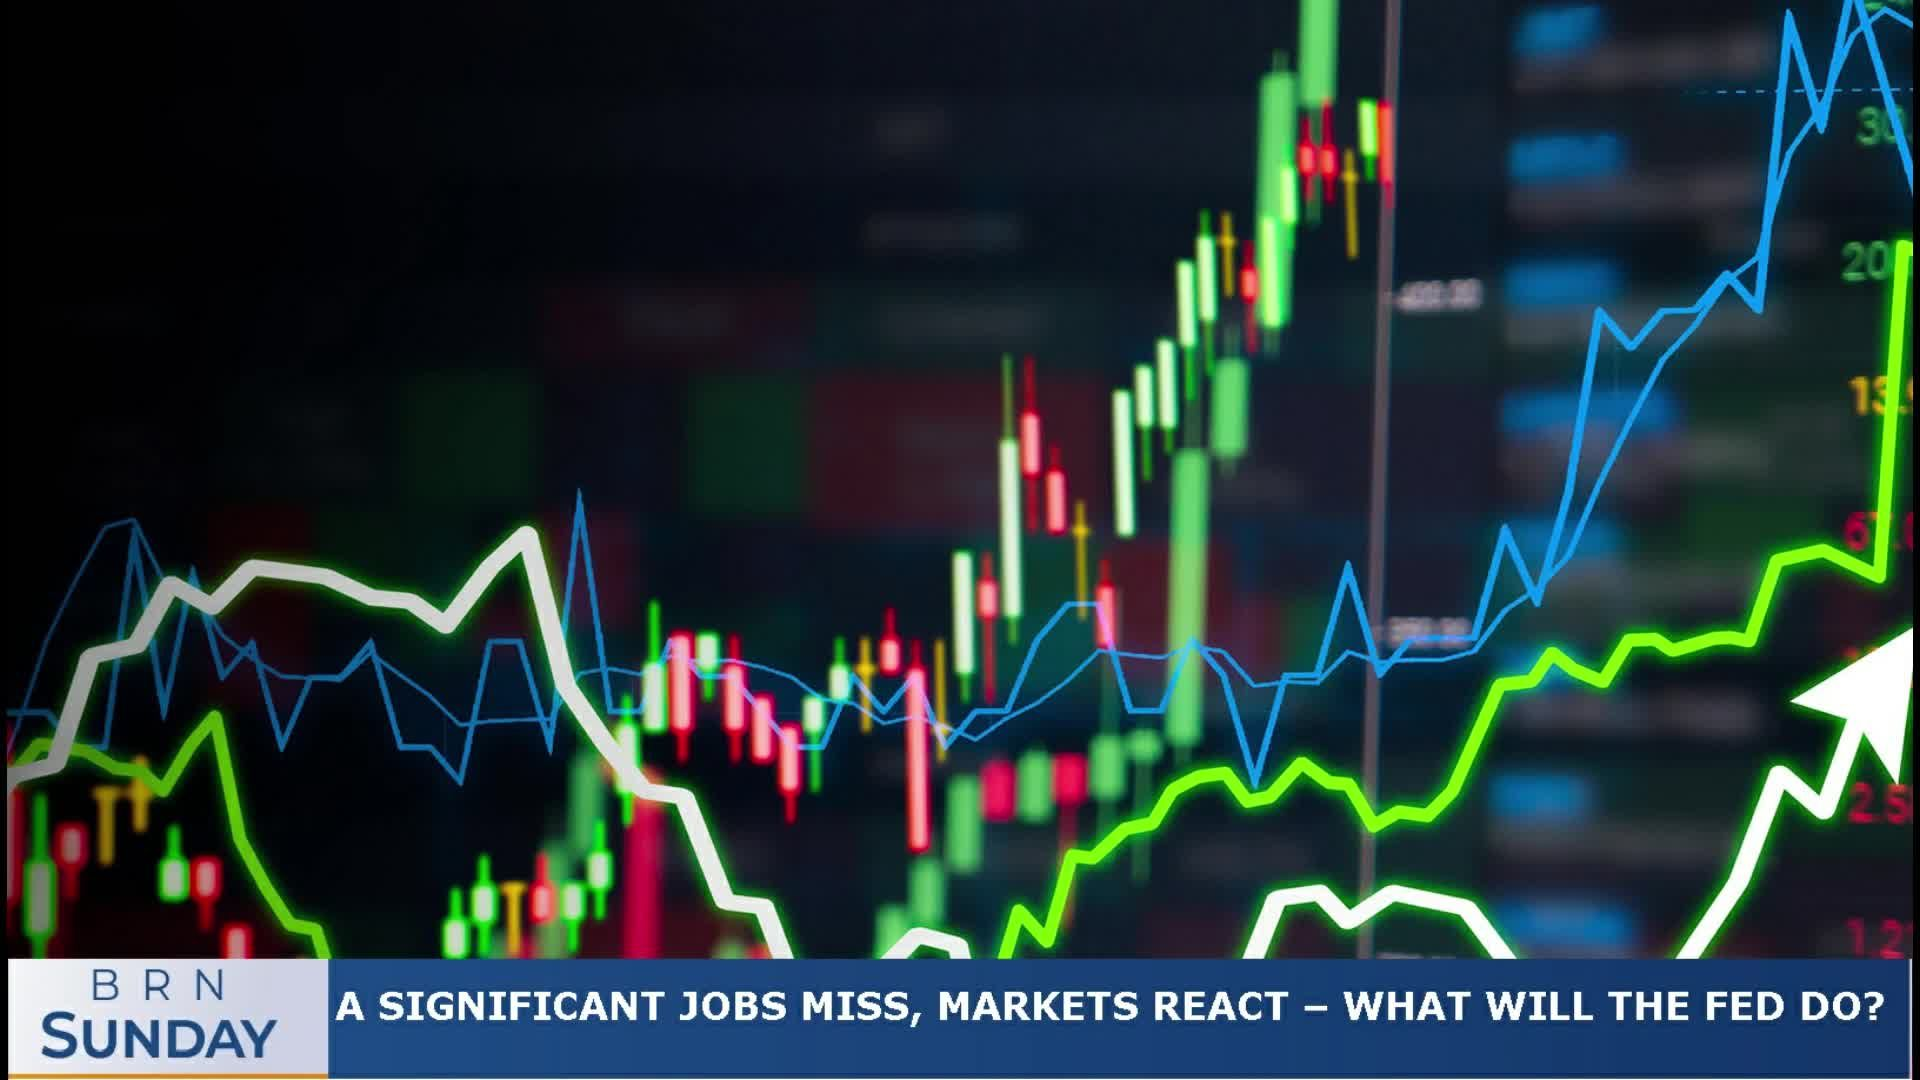 BRN Sunday   a significant jobs miss, markets react – what will the Fed do?